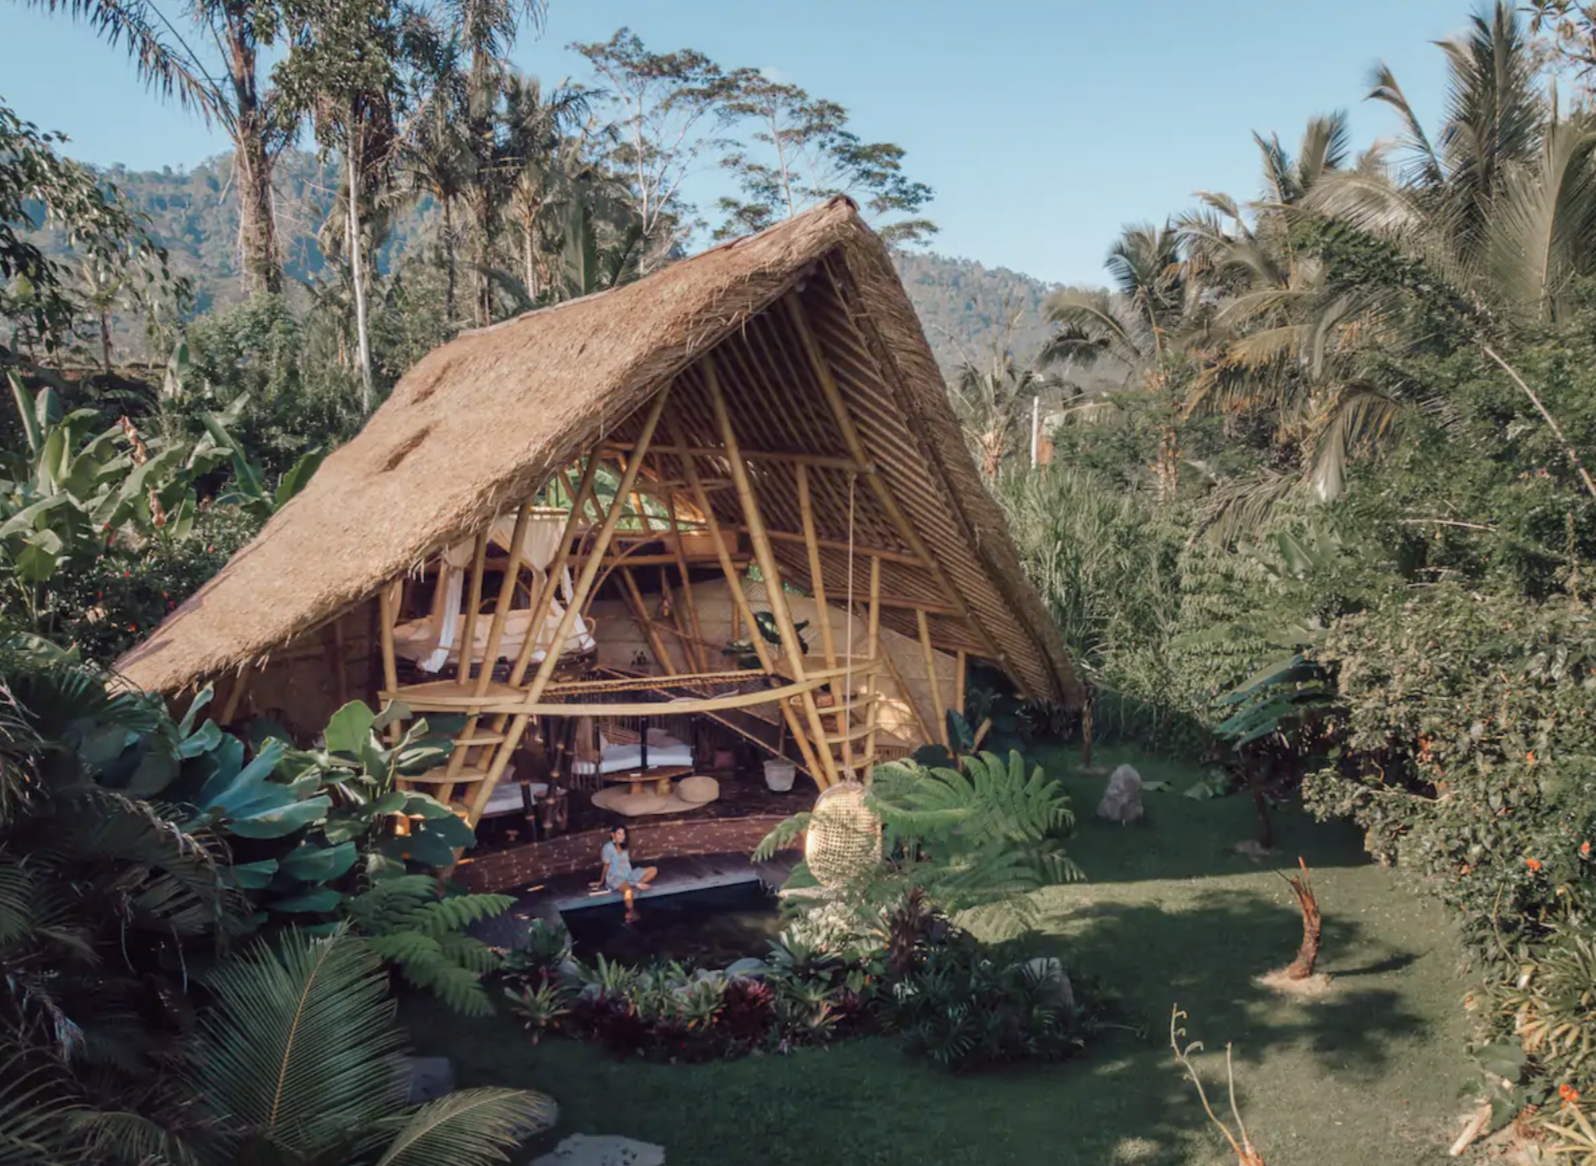 The Most Beautiful Homes On Airbnb